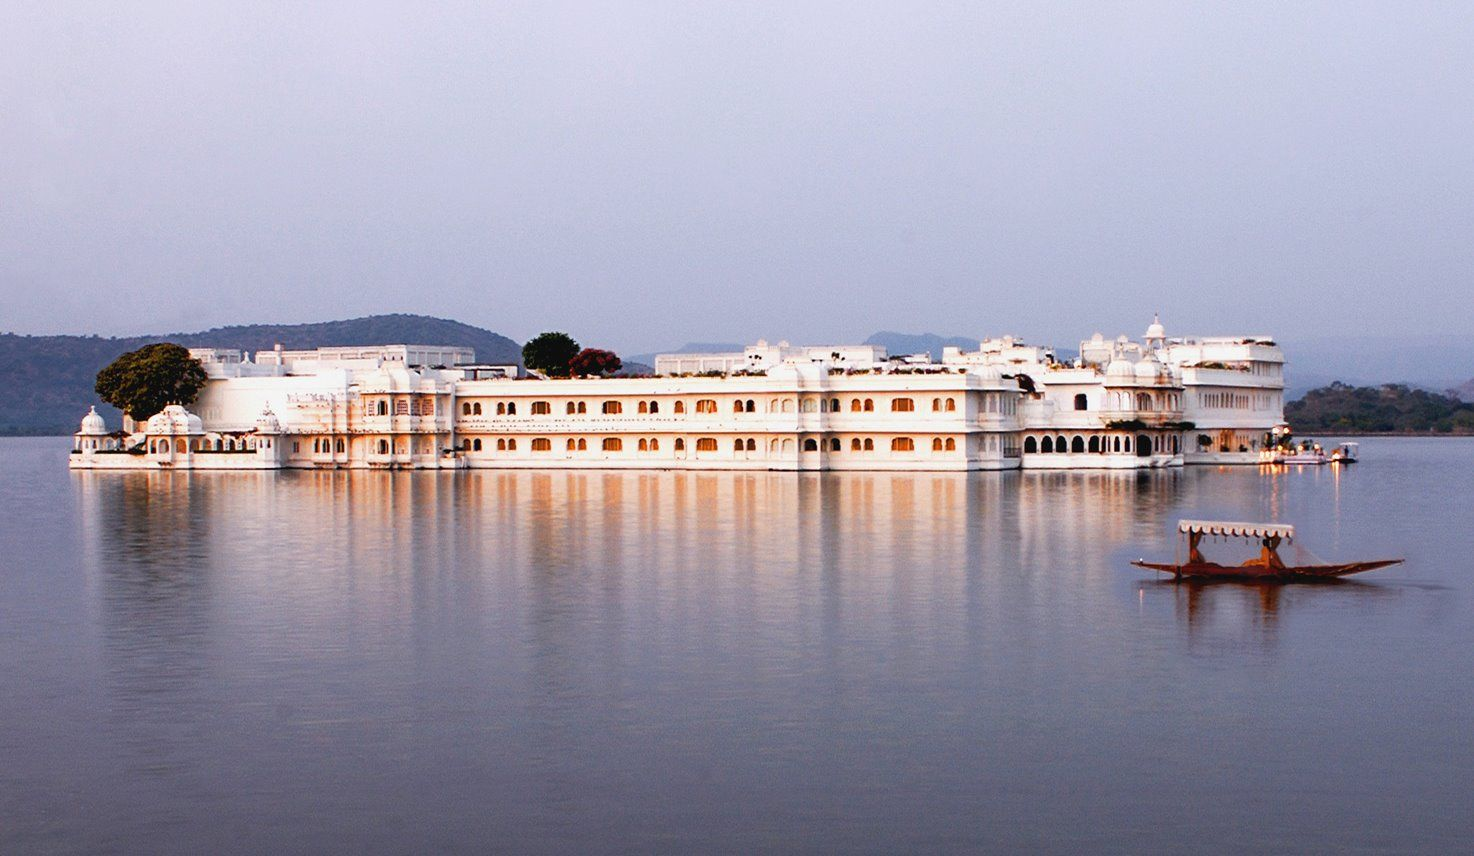 15 Majestic Palaces In India That Redefine The Word 'Grand